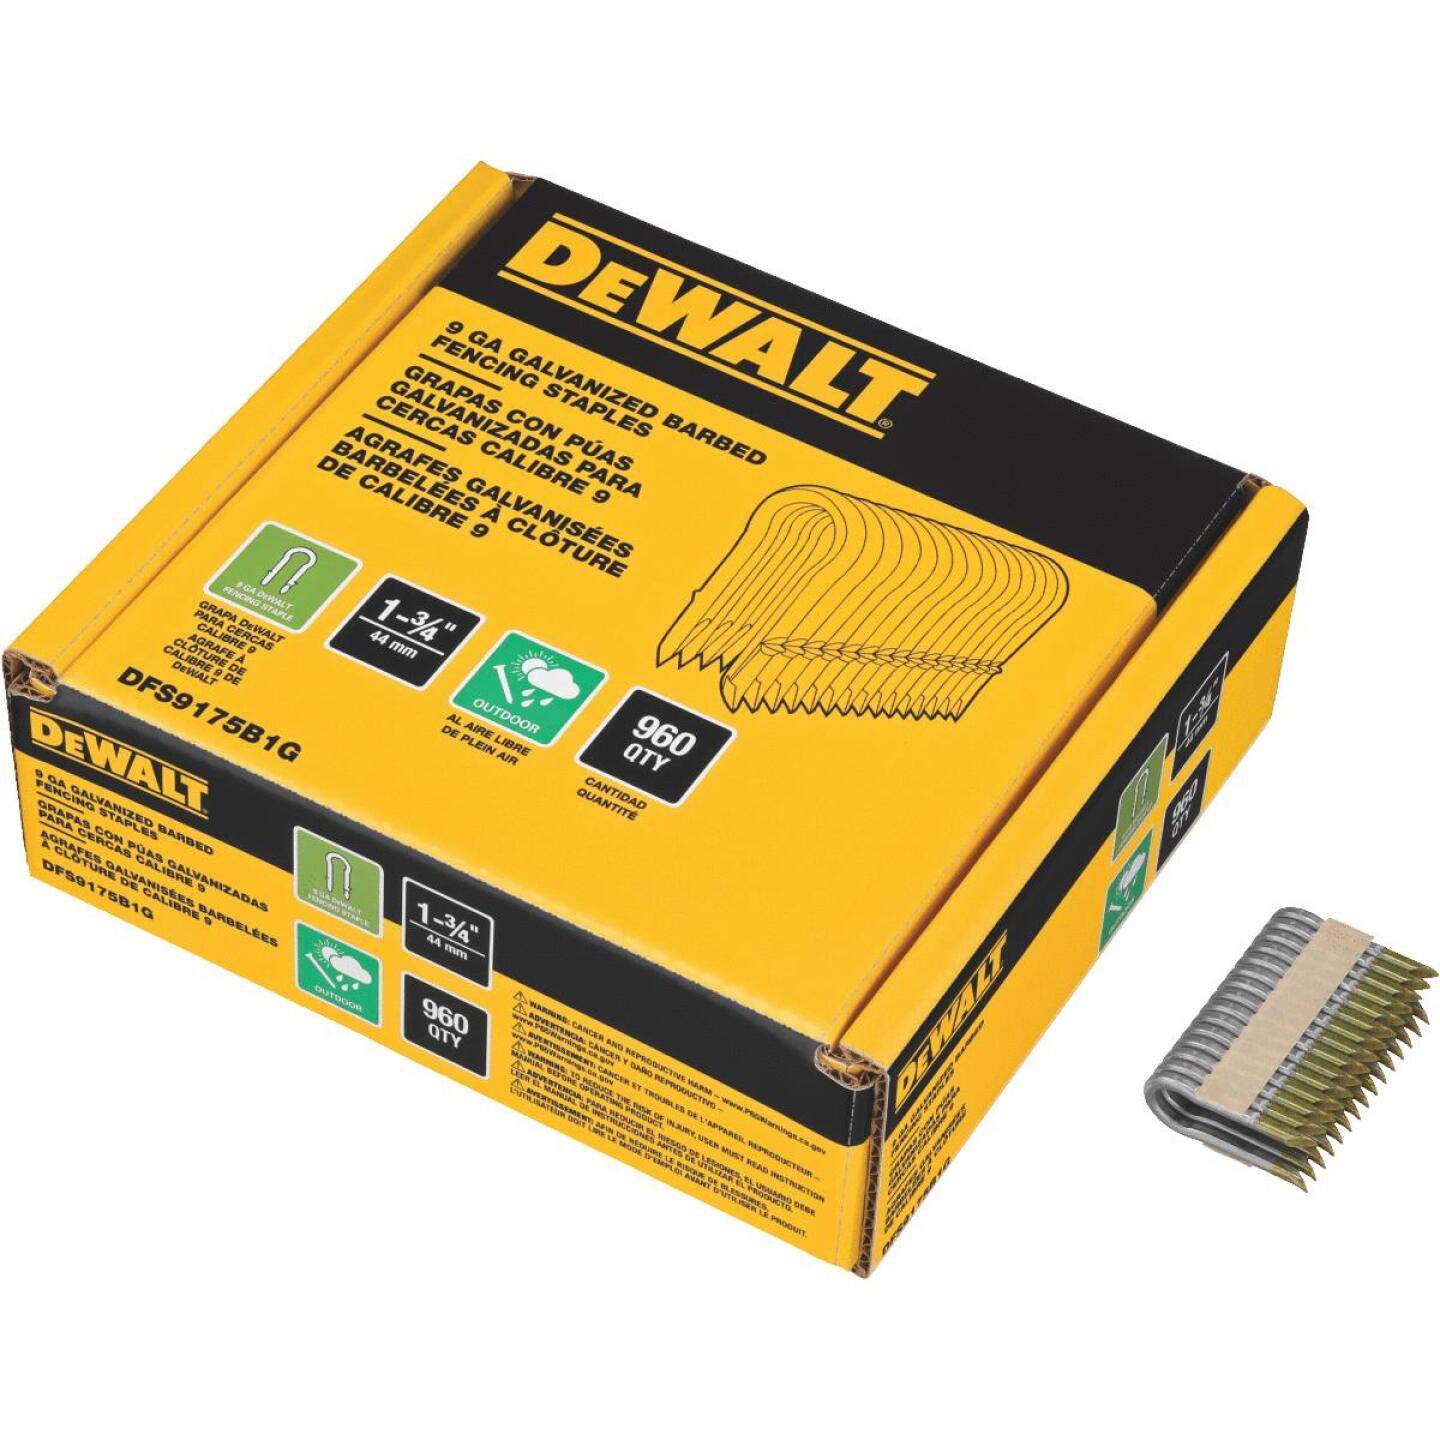 DeWalt 1-3/4 In. 9 Ga. Galvanized Barbed Collated Fence Staple (960-Ct.) Image 2